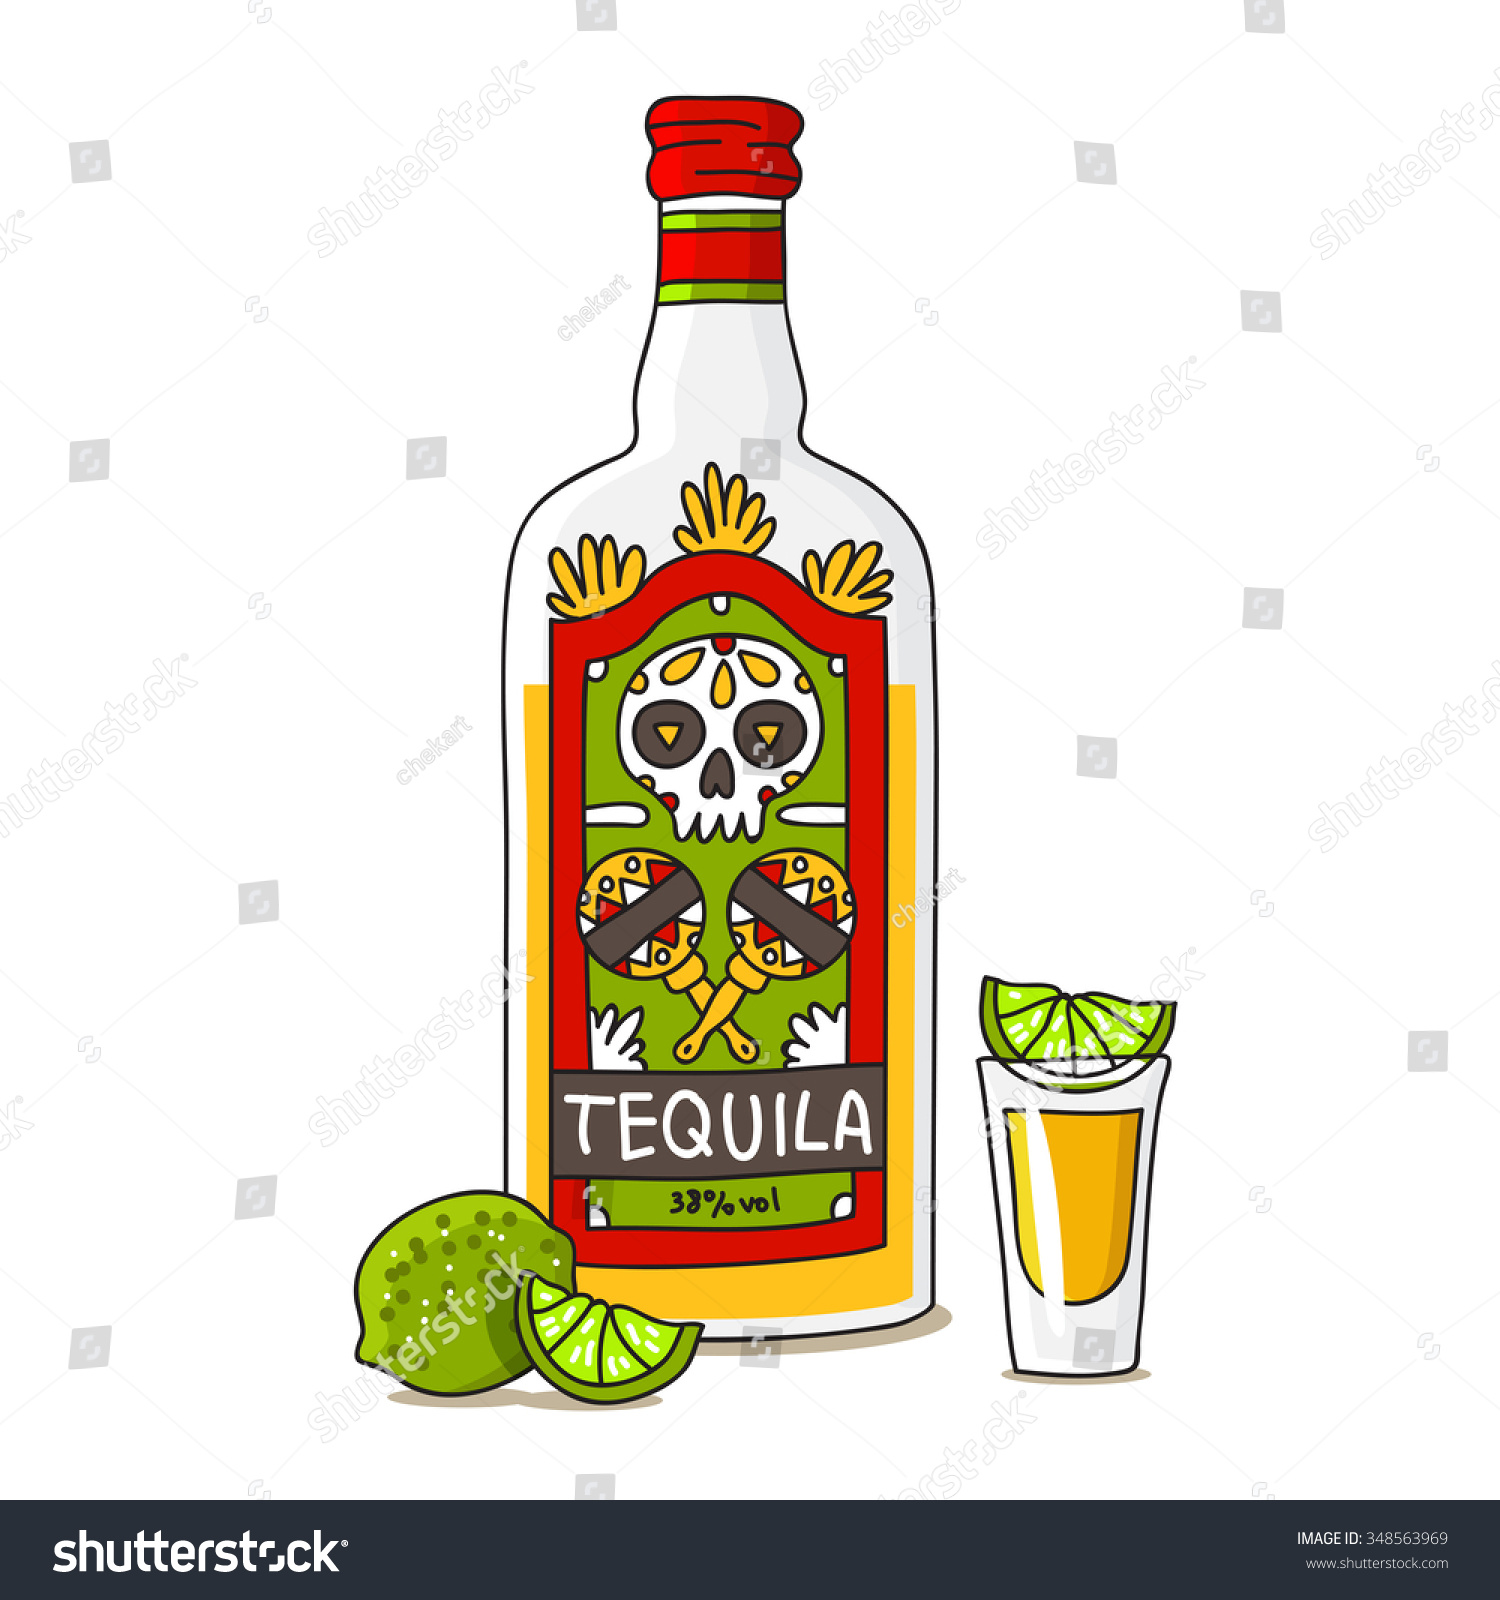 Tequila Dibujo Png